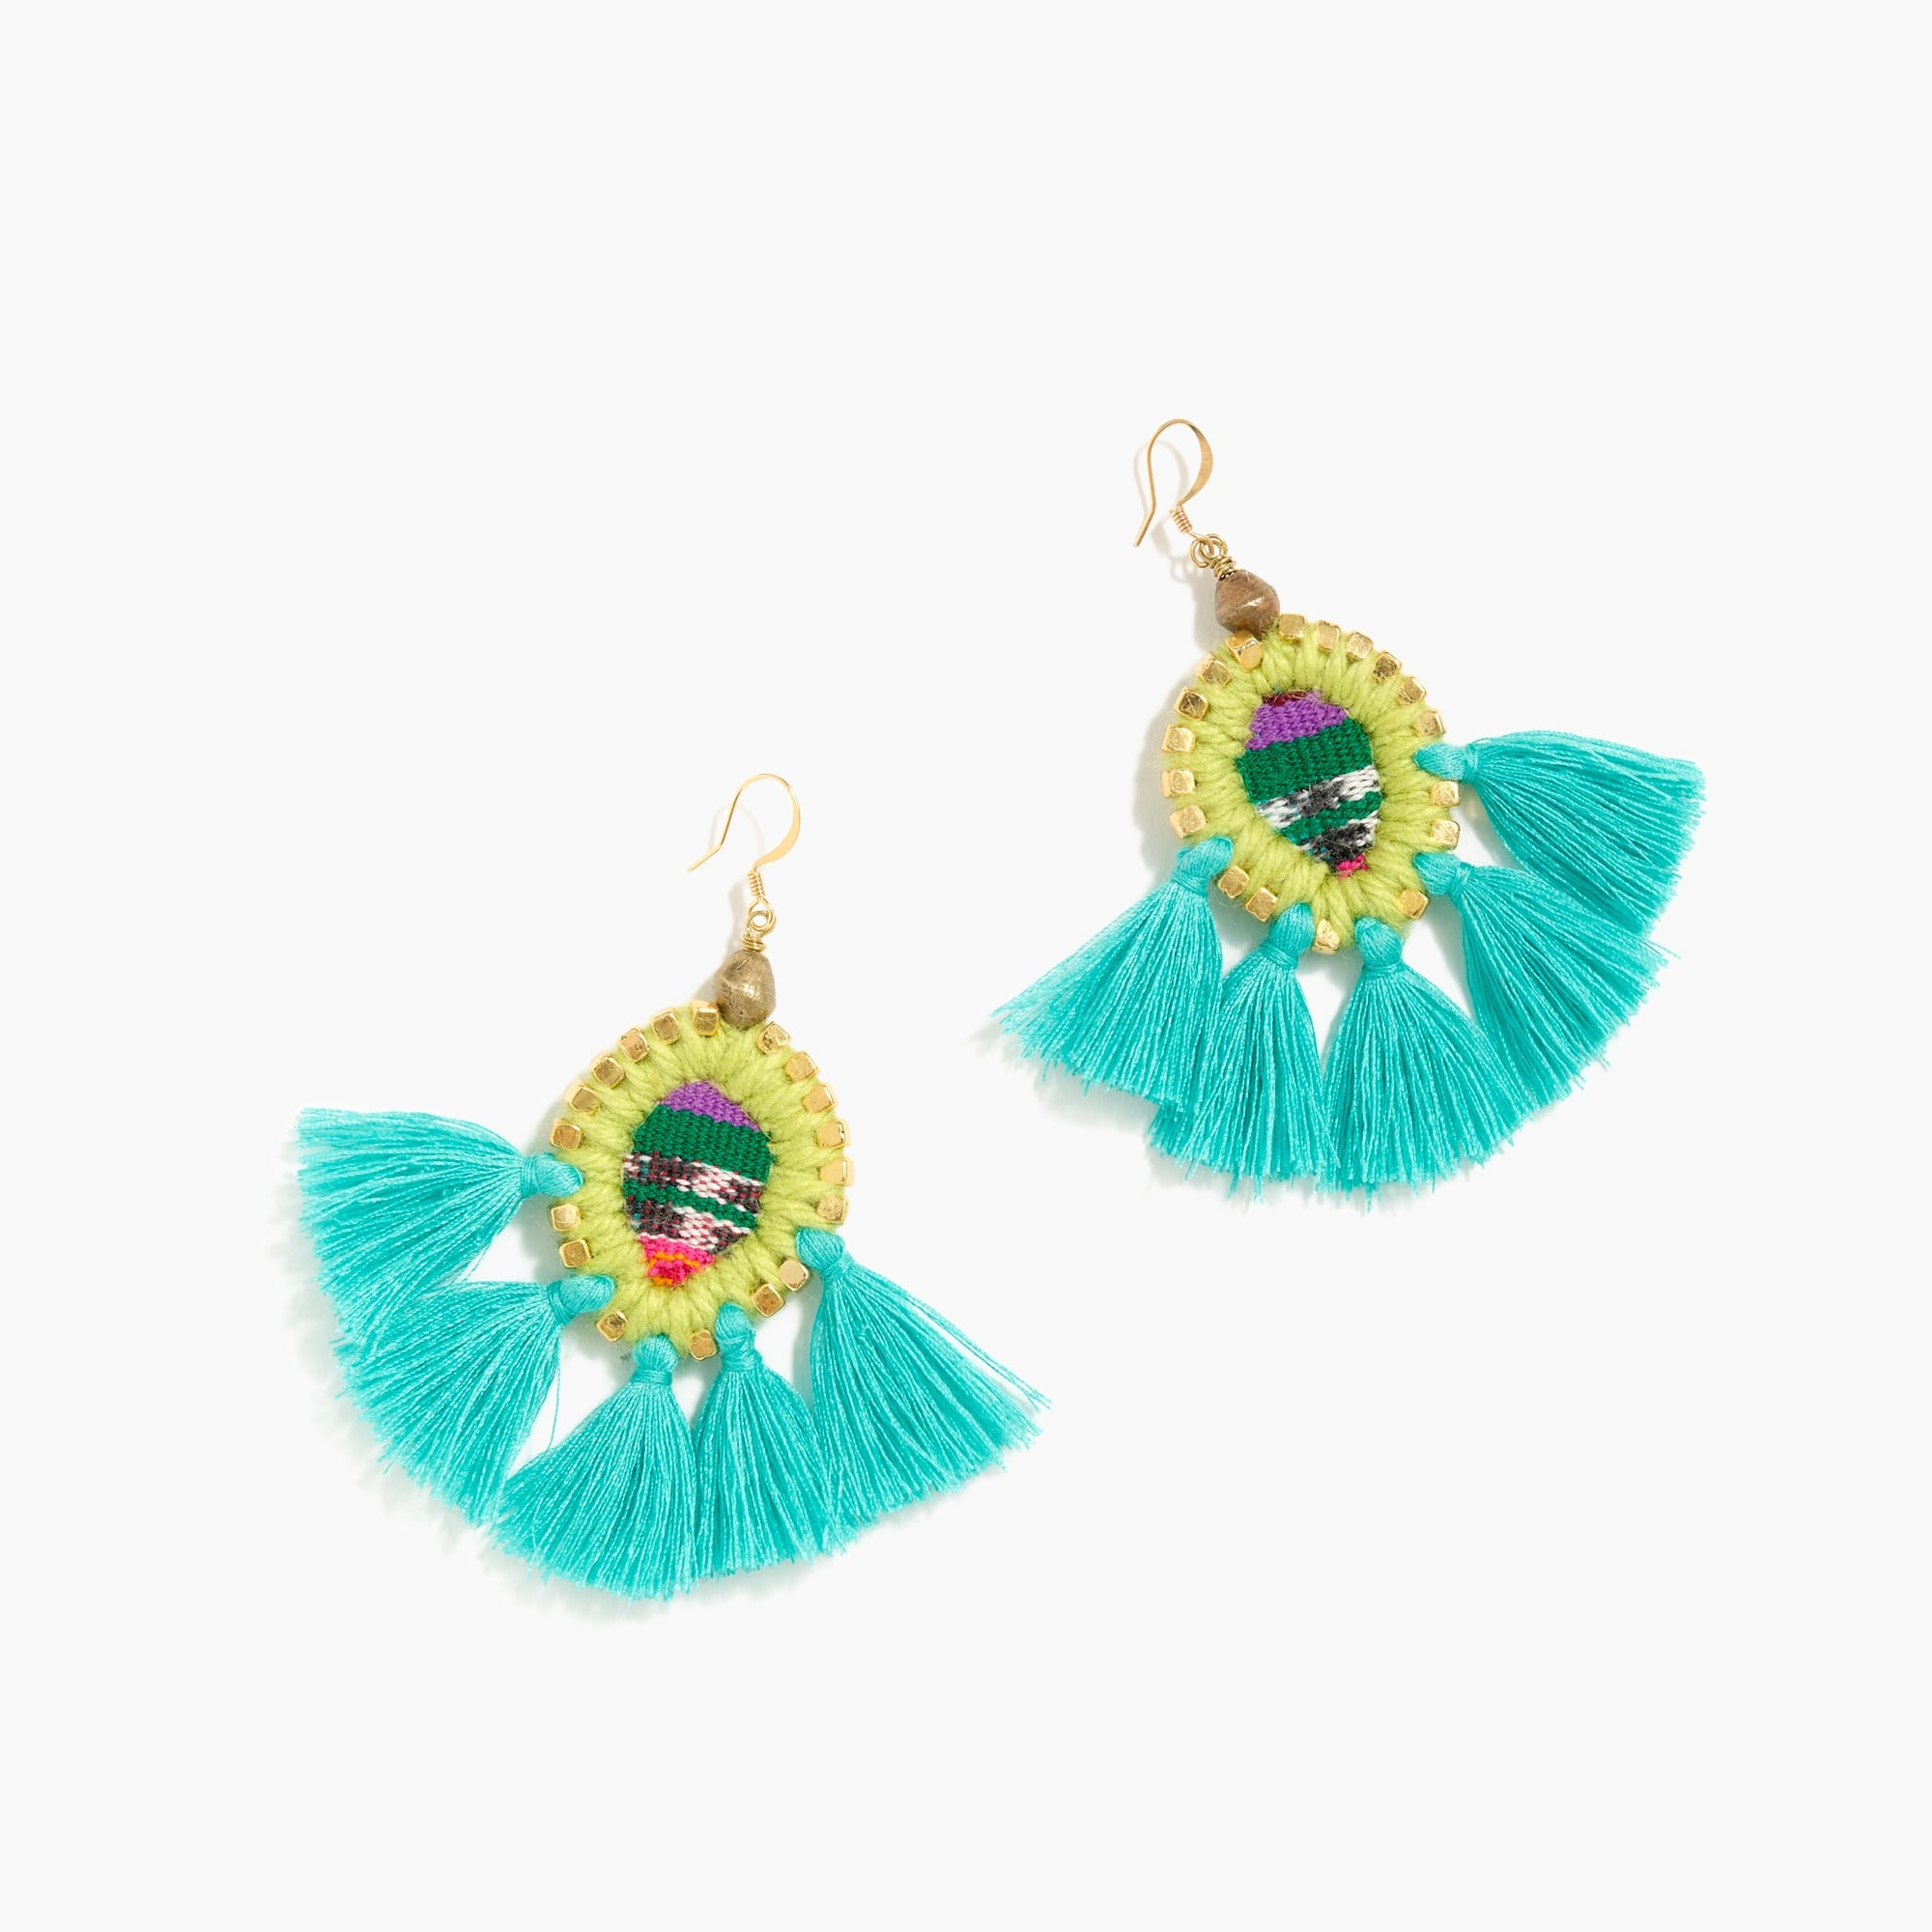 Gaia™ tassel earrings